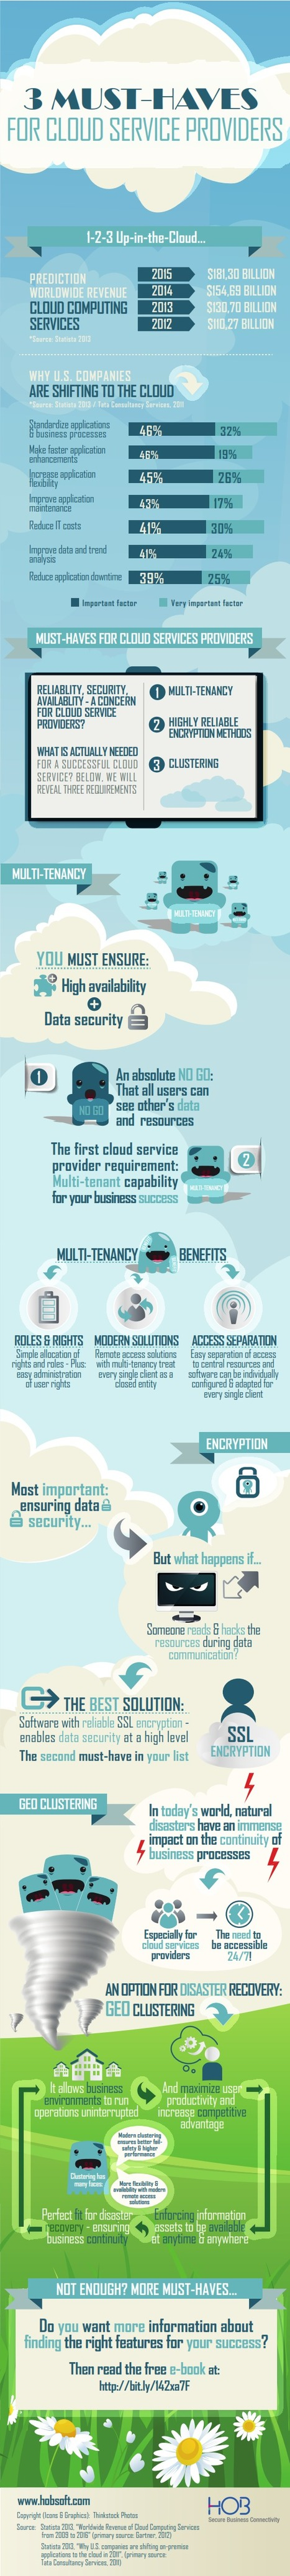 INFOGRAPHICS - 3 Must-Haves For Cloud Service Providers | Cloud Central | Scoop.it